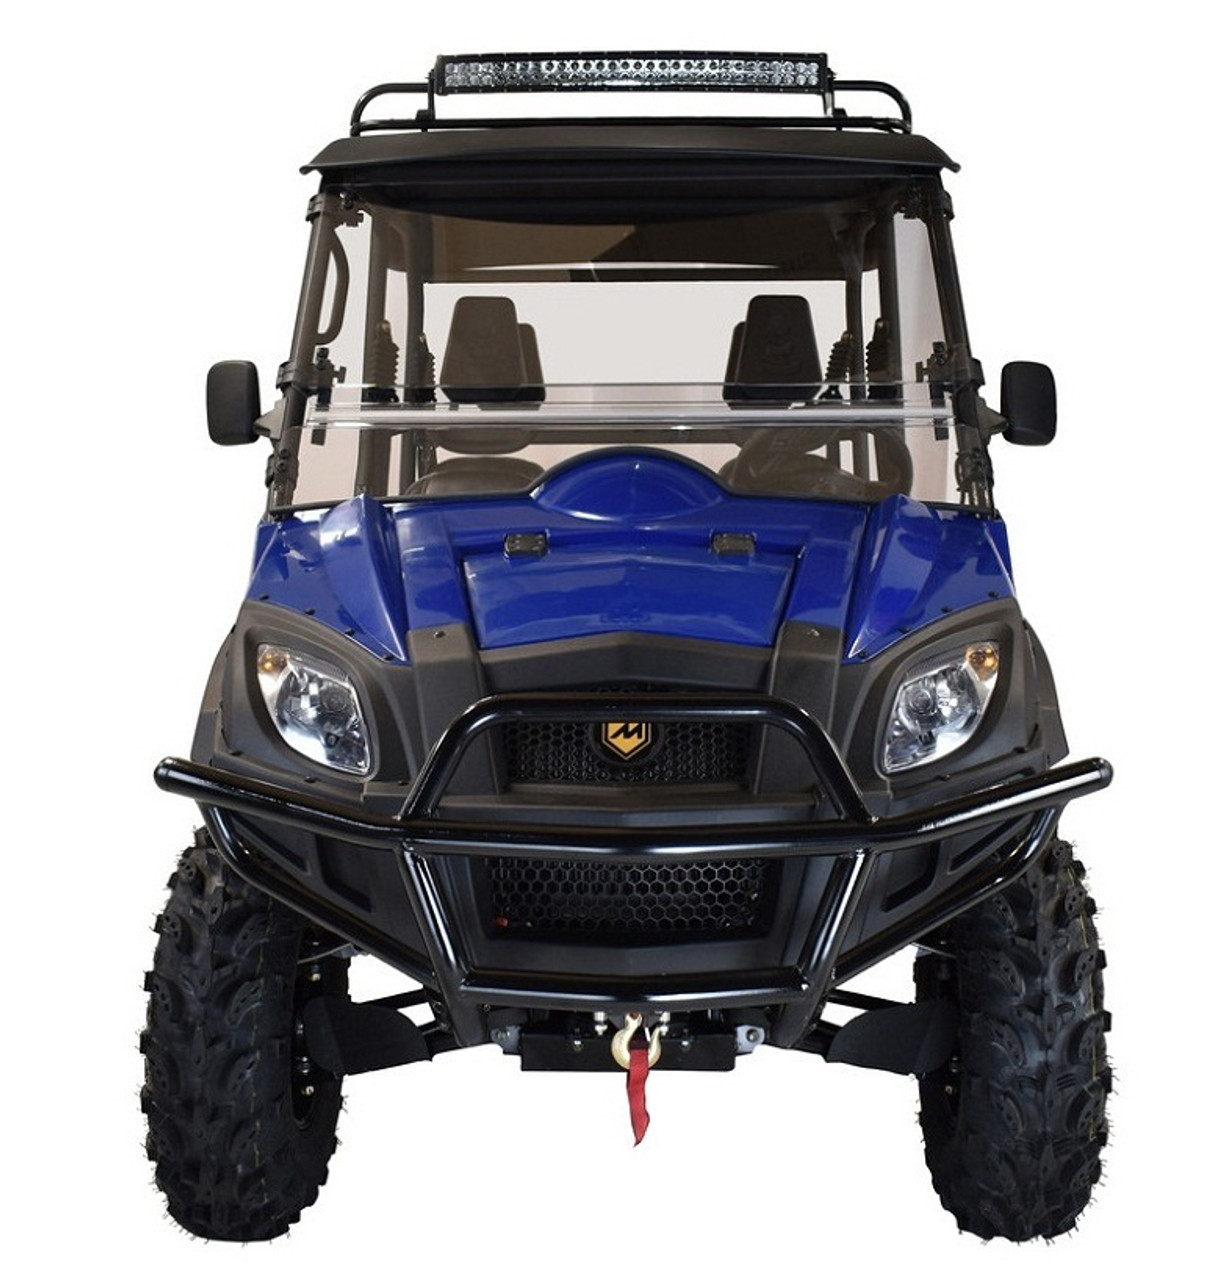 Blue - MASSIMO MSU-850-5 UTV,Four Stroke 2 Cylinder V-Twin,Liquid Cooled